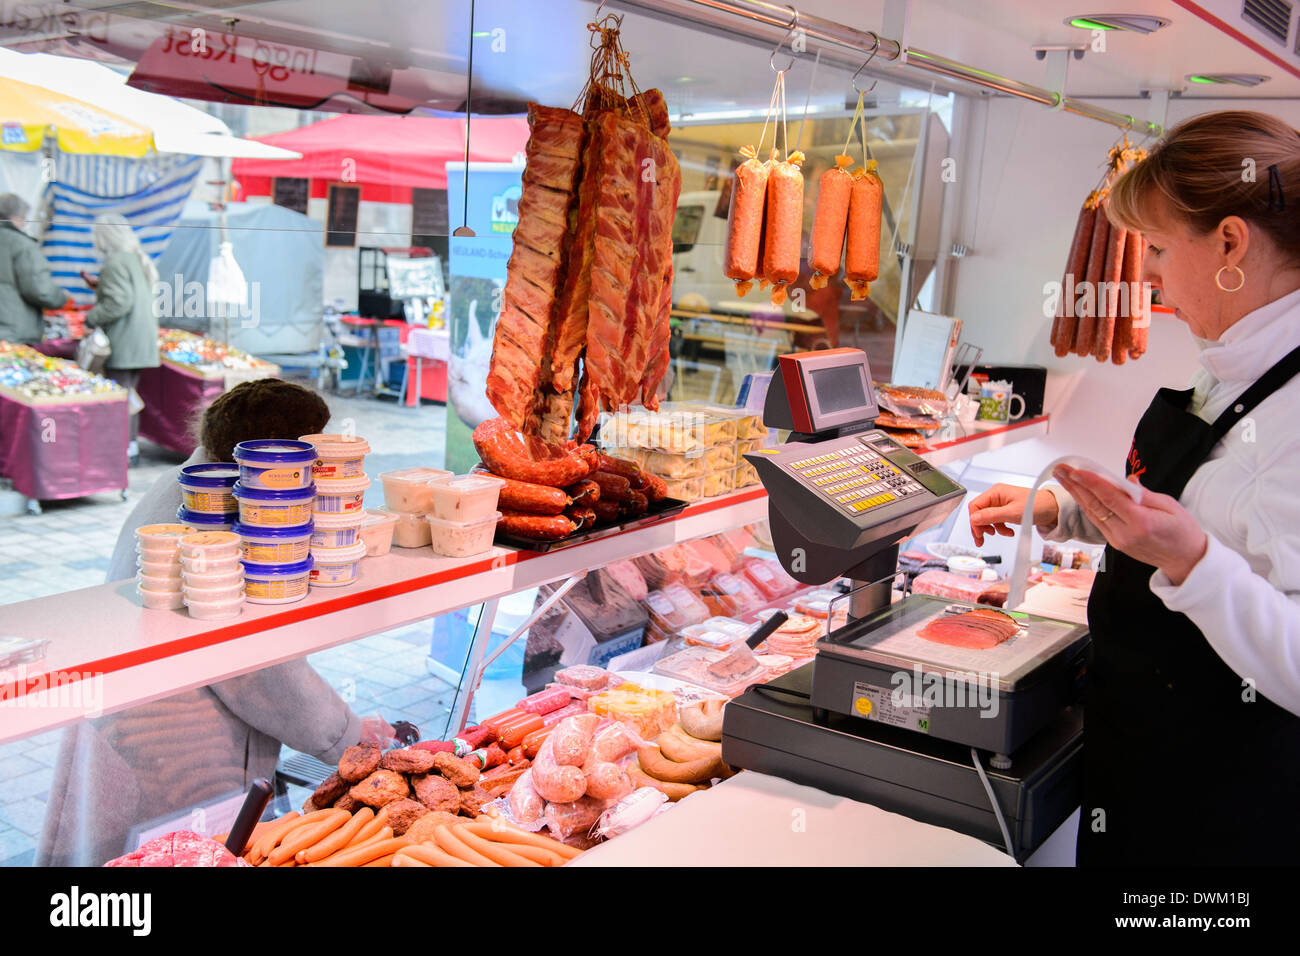 Berlin, Germany. 28th Feb, 2014. The mobile butcher shop of butcher Ingo Rast on February 28, 2014 in Berlin, Germany. Photo: picture alliance/Robert Schlesinger/dpa/Alamy Live News - Stock Image